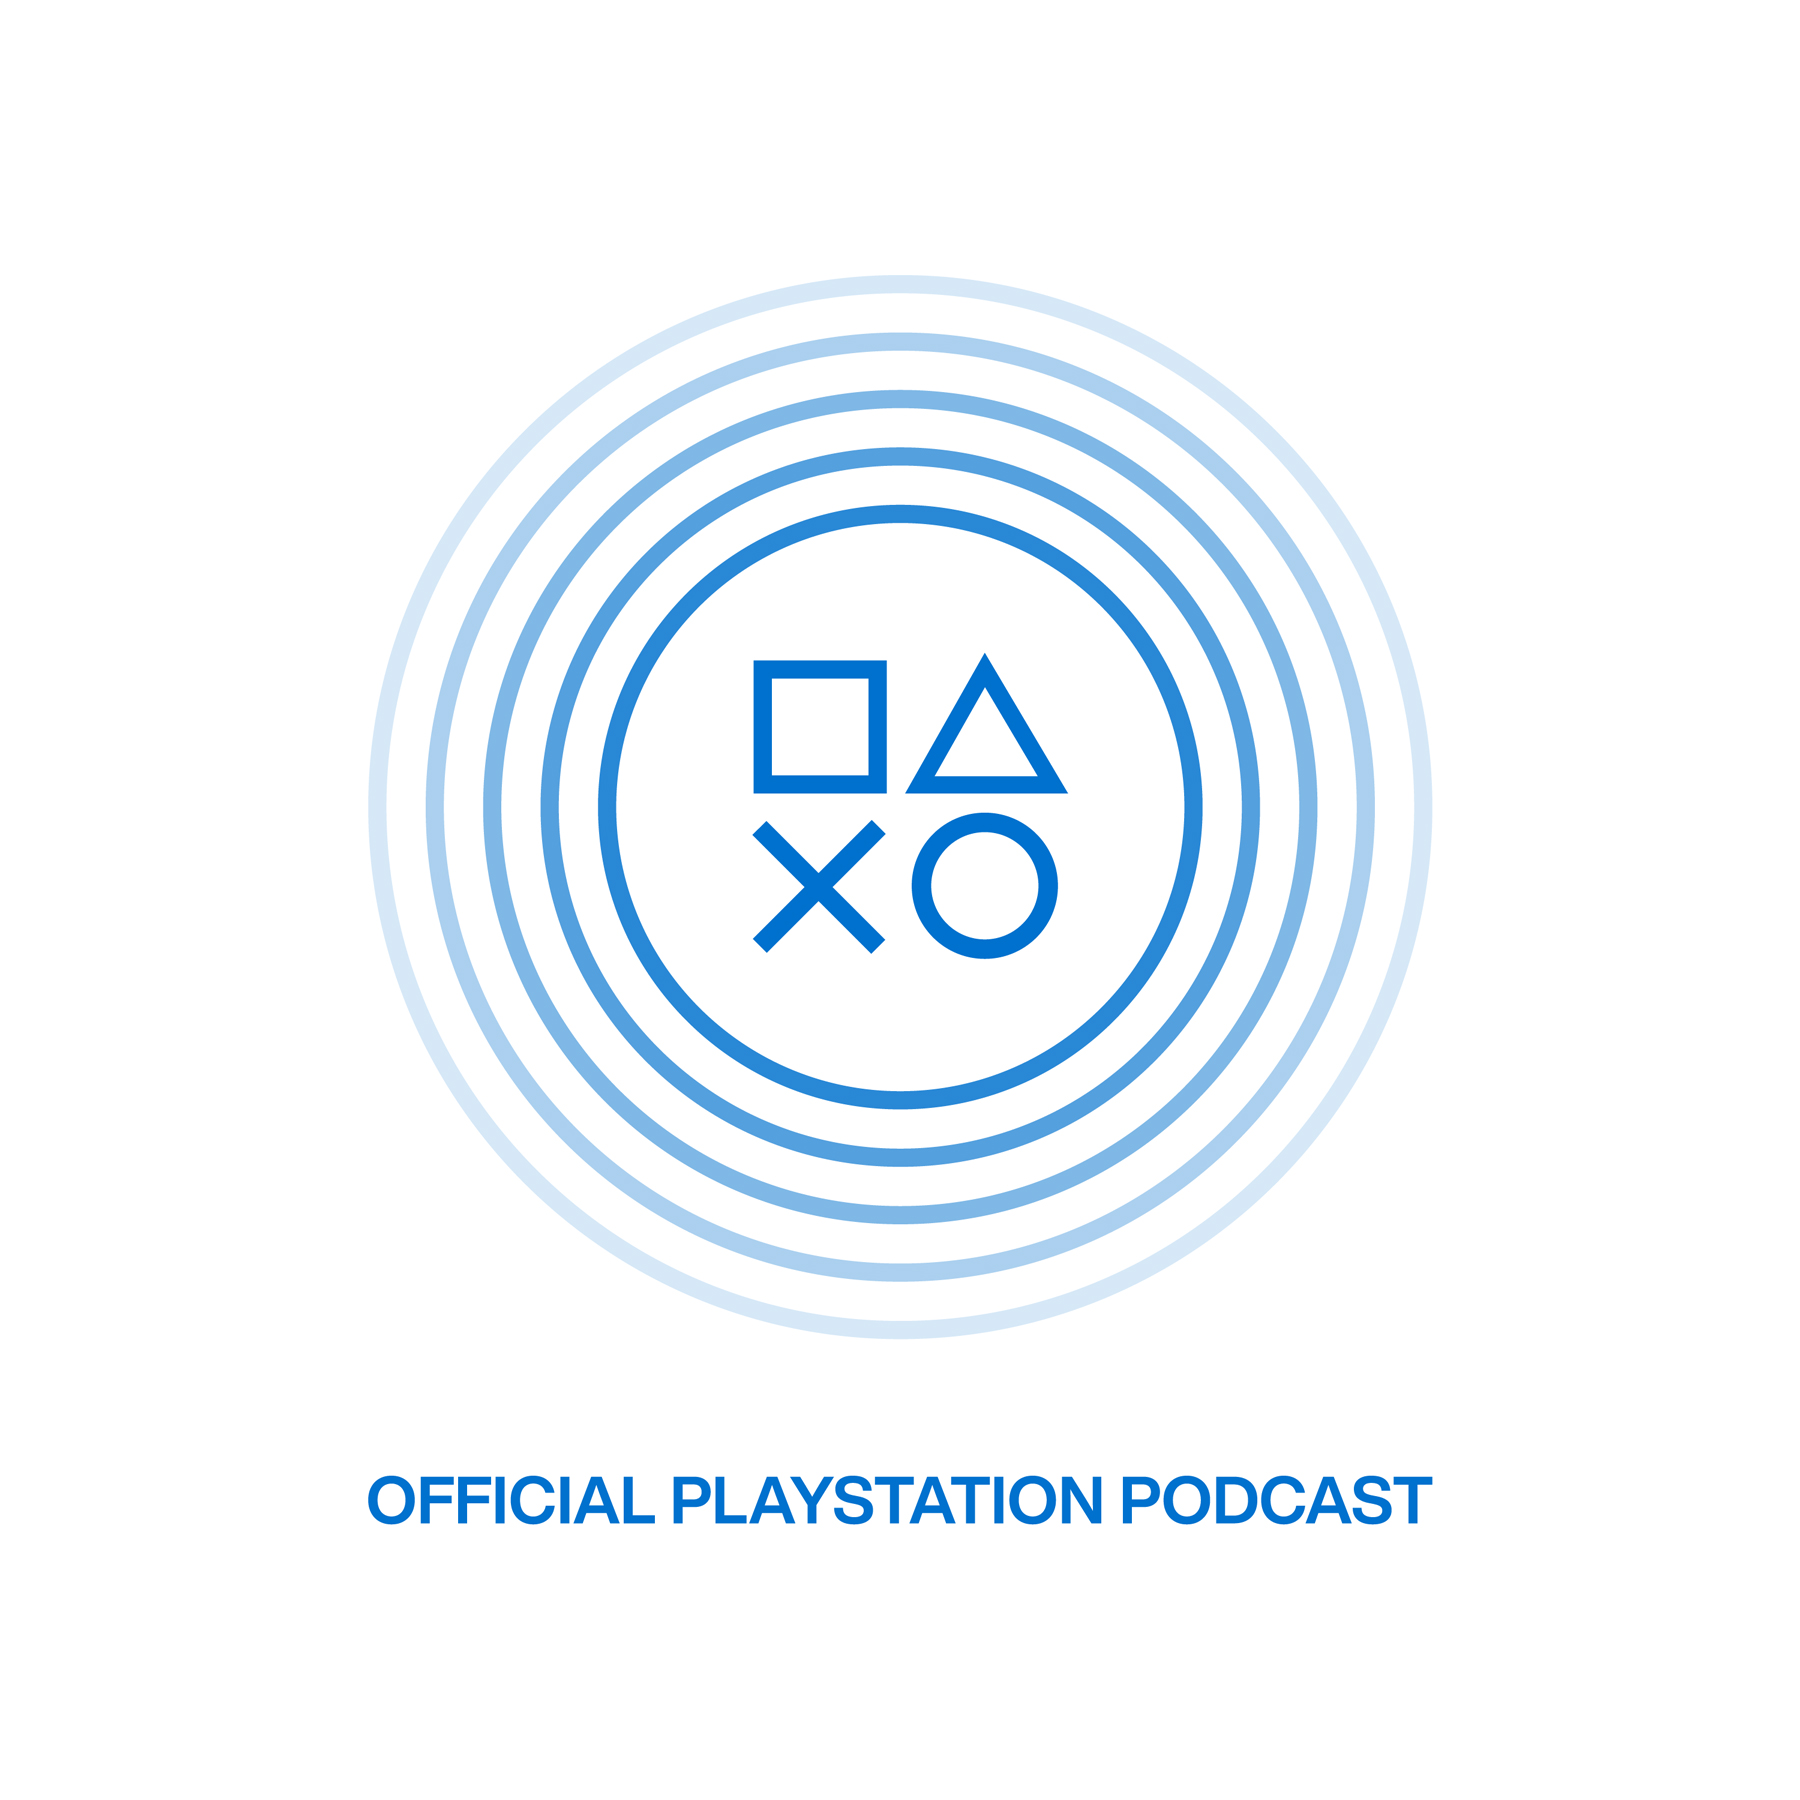 Official PlayStation Podcast show art